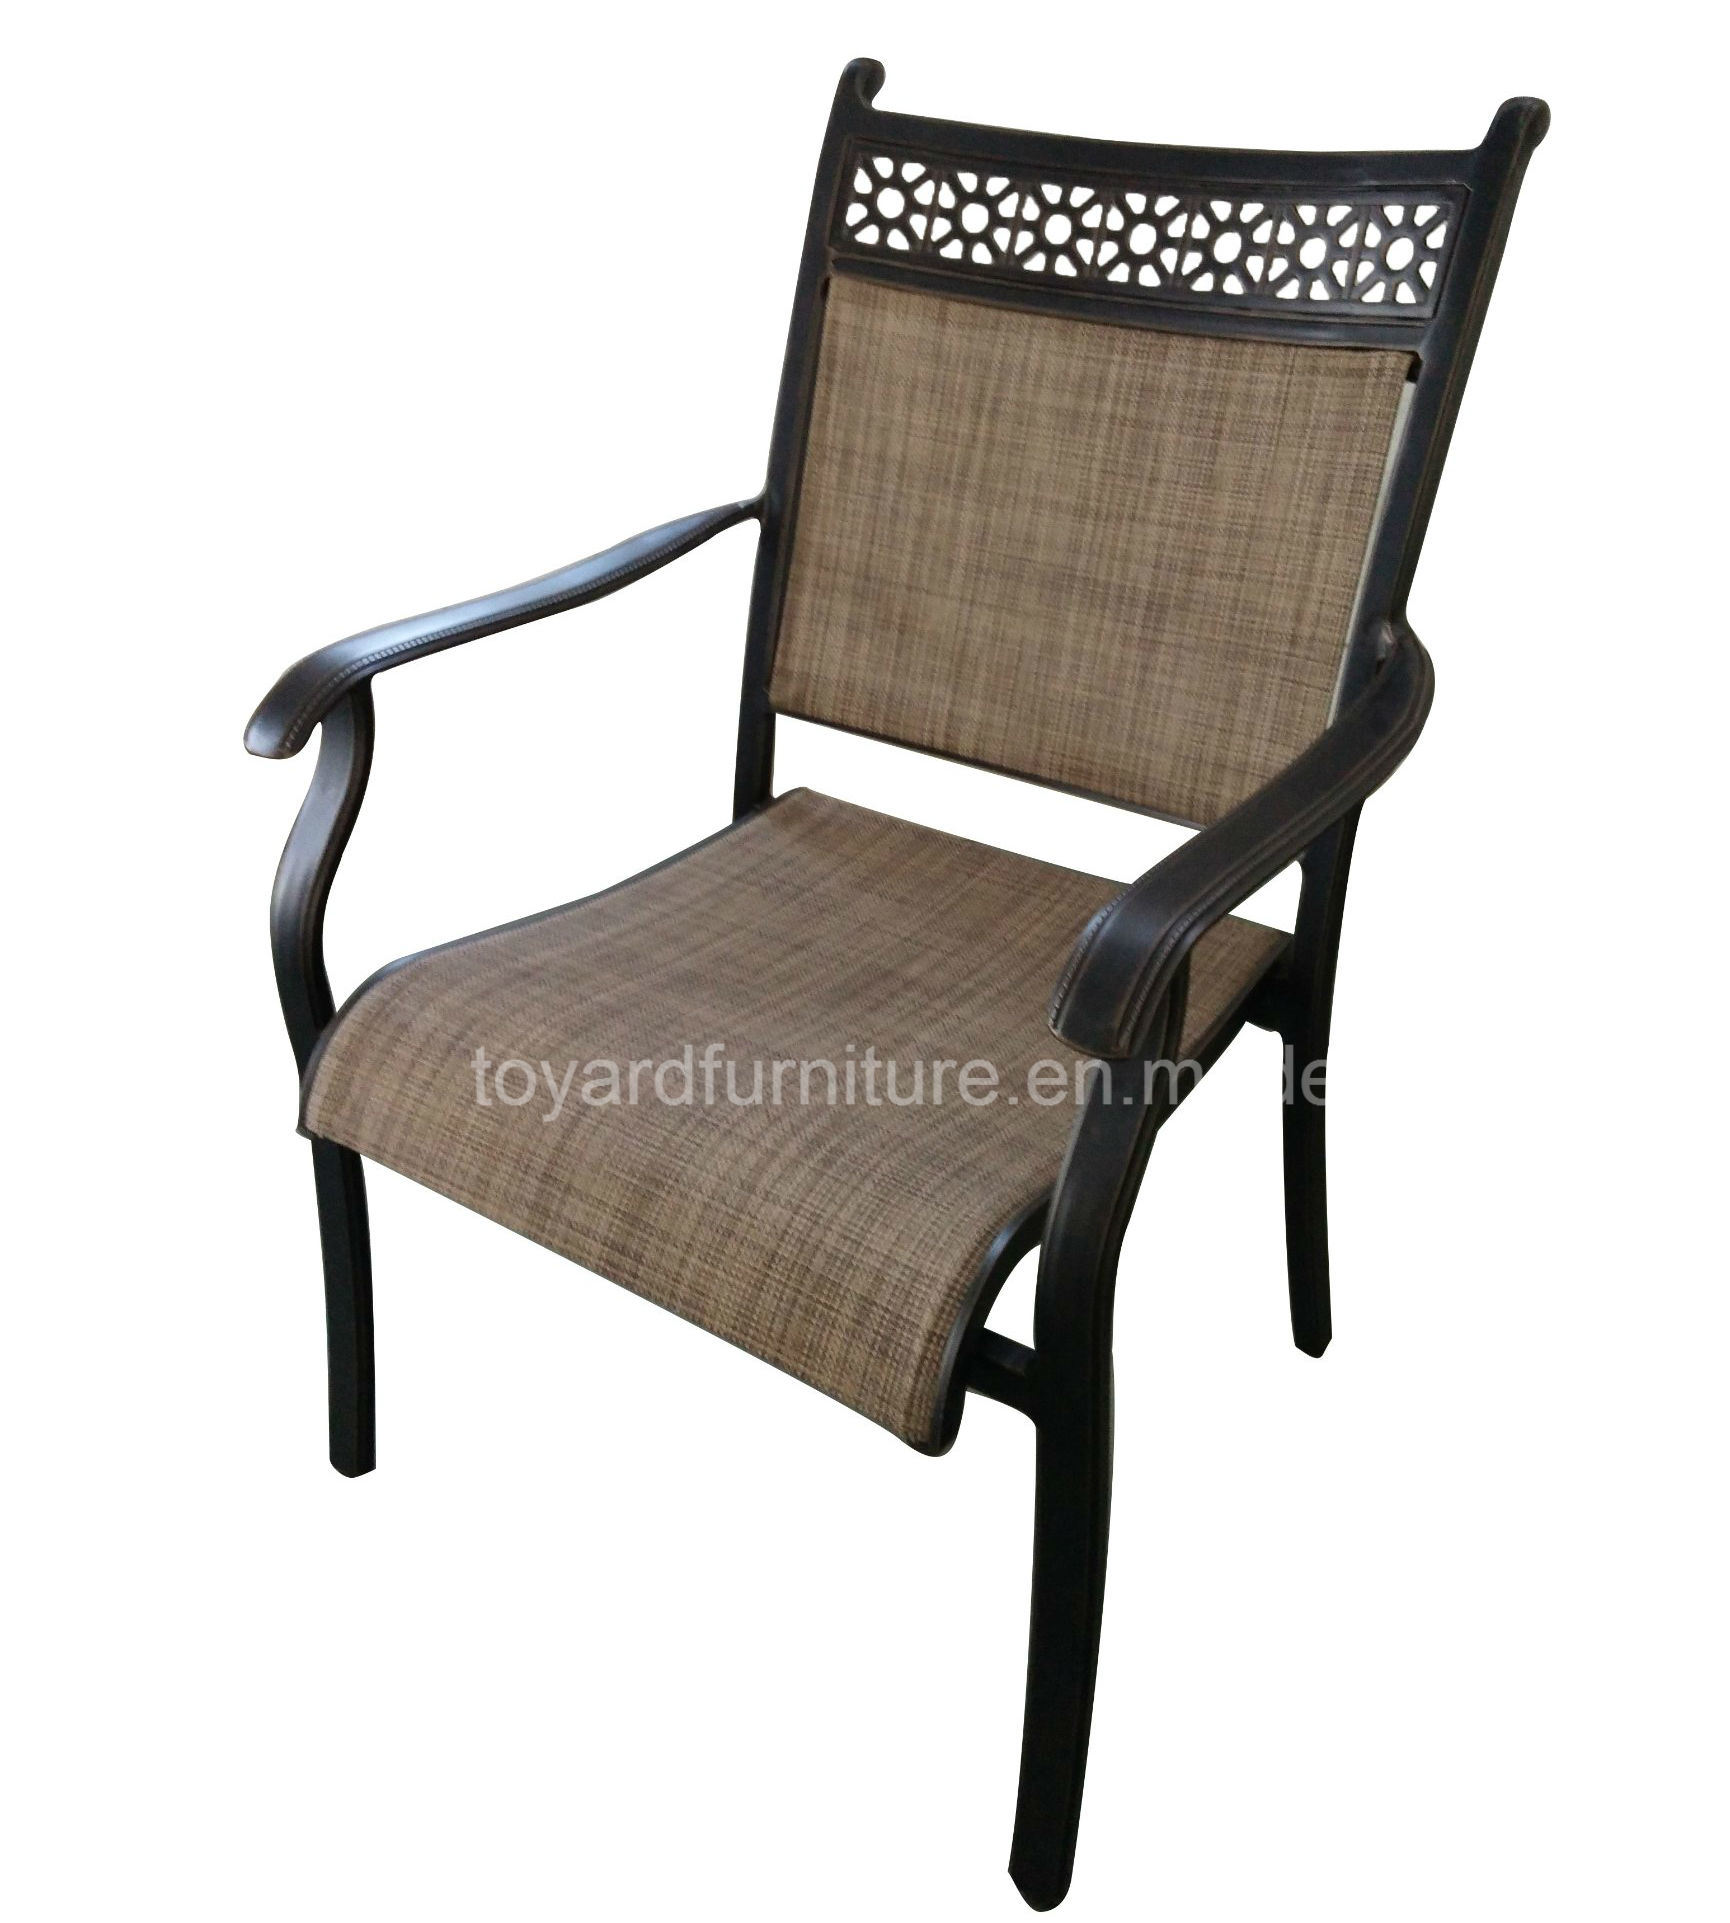 Home Indoor Outdoor Sling Mesh/ Cast Aluminum Dining Arm Chair in Antique Bronze Finish